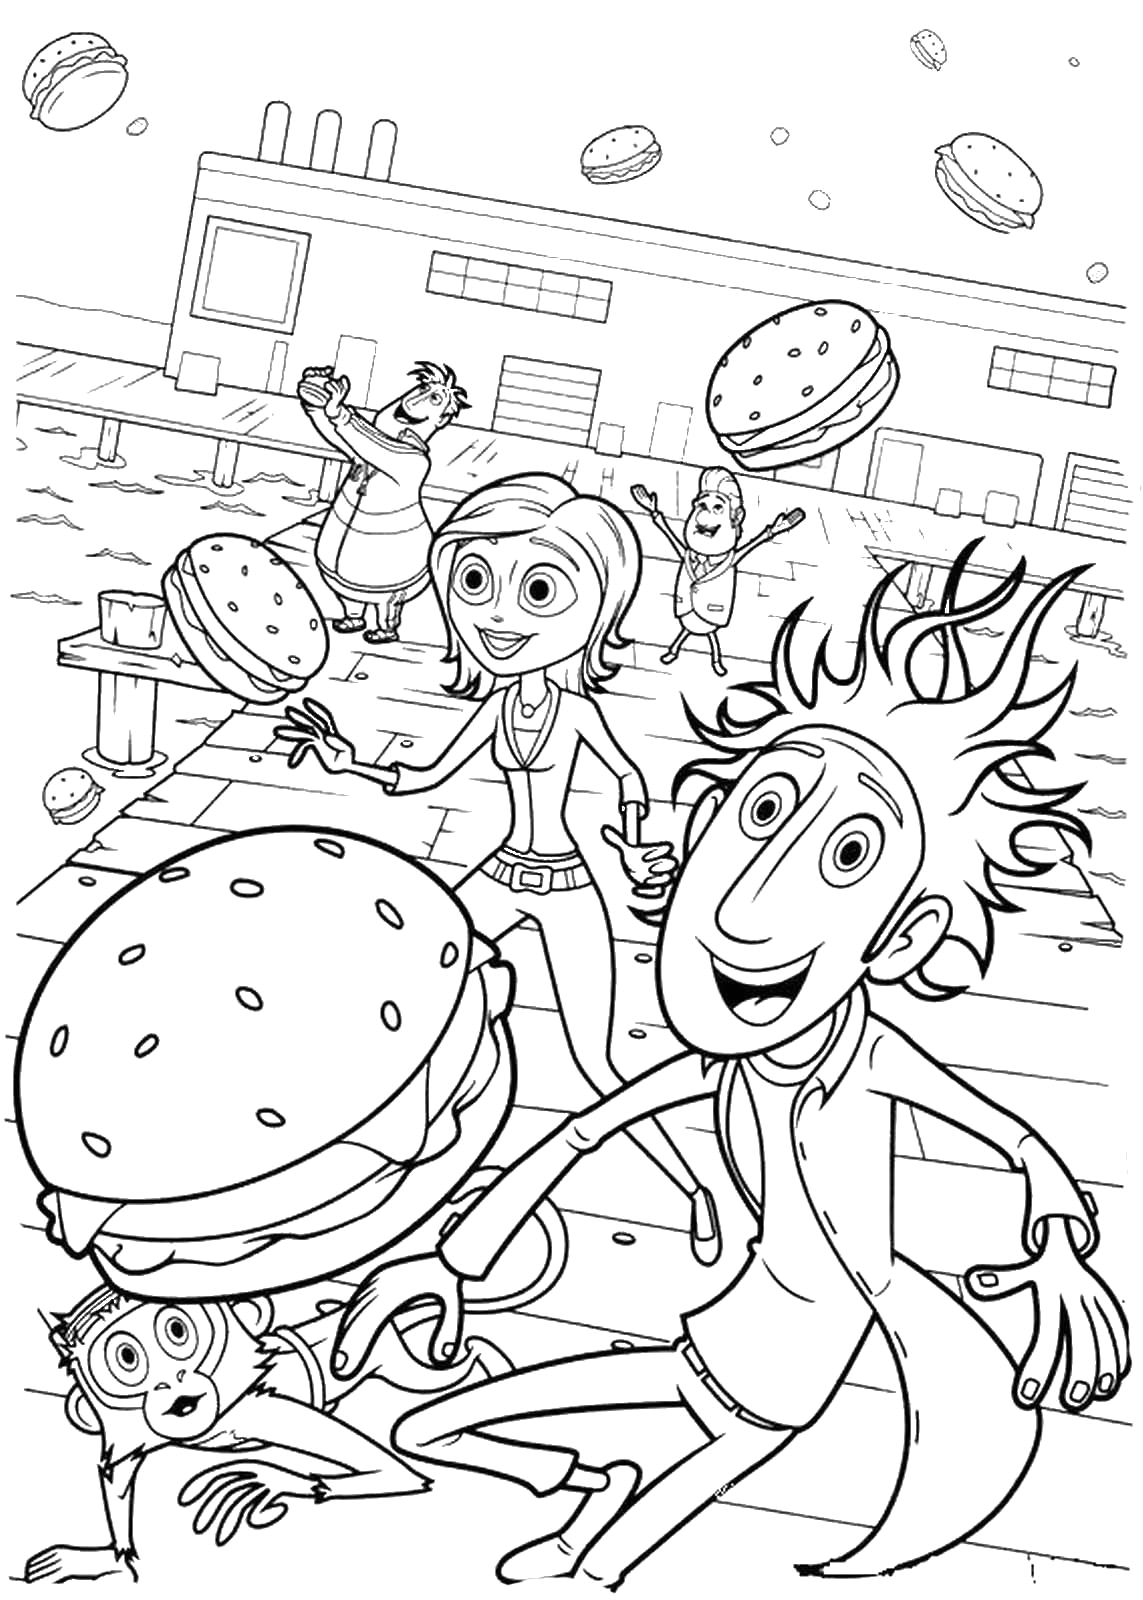 cloudy chance meatballs coloring pages